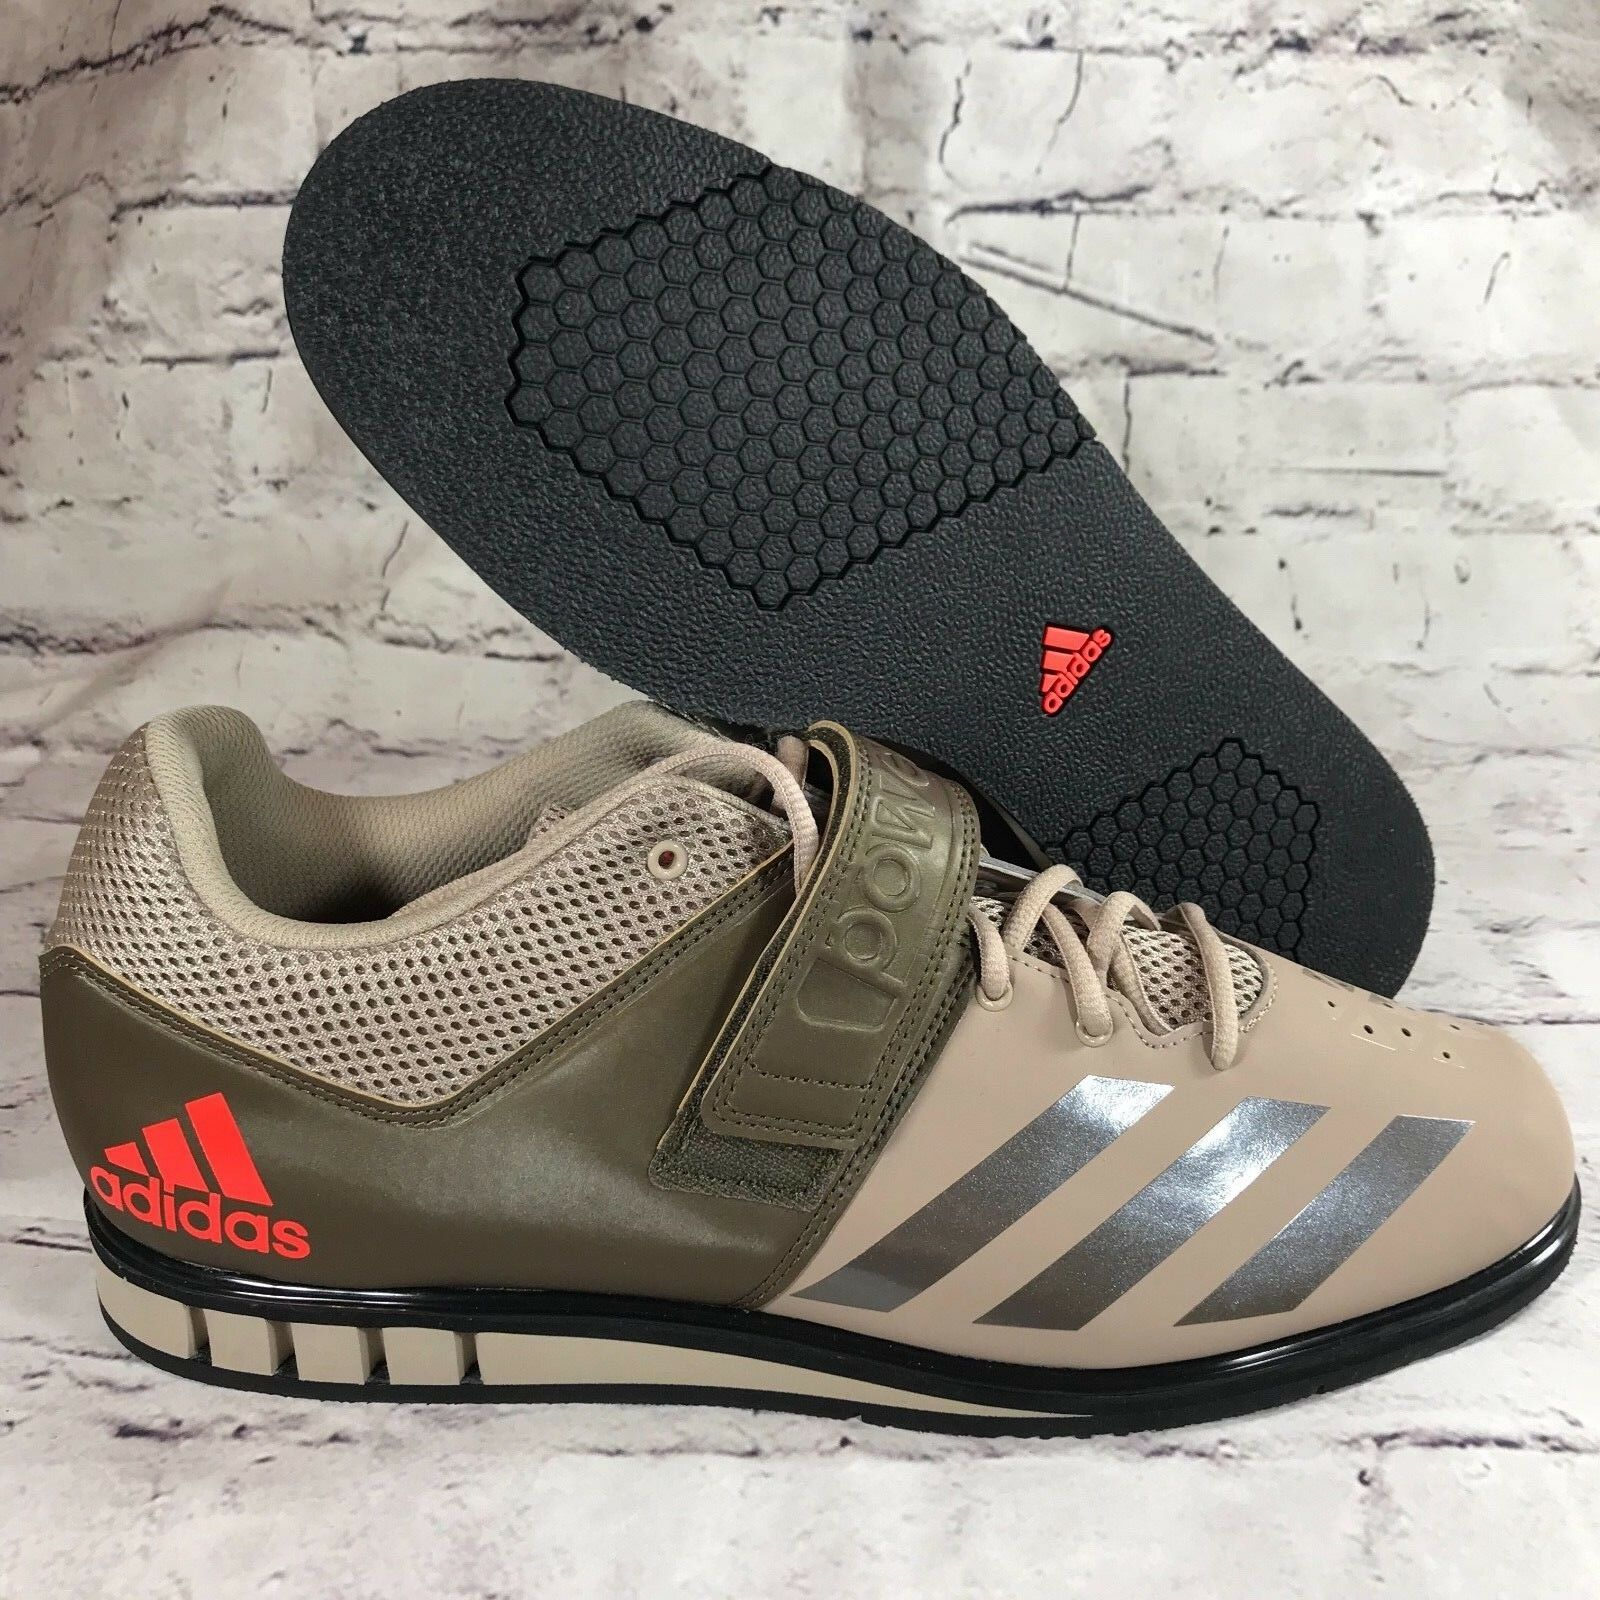 Adidas POWERLIFT 3.1 Brown Green weightlifting shoes BA8017 sz14.5